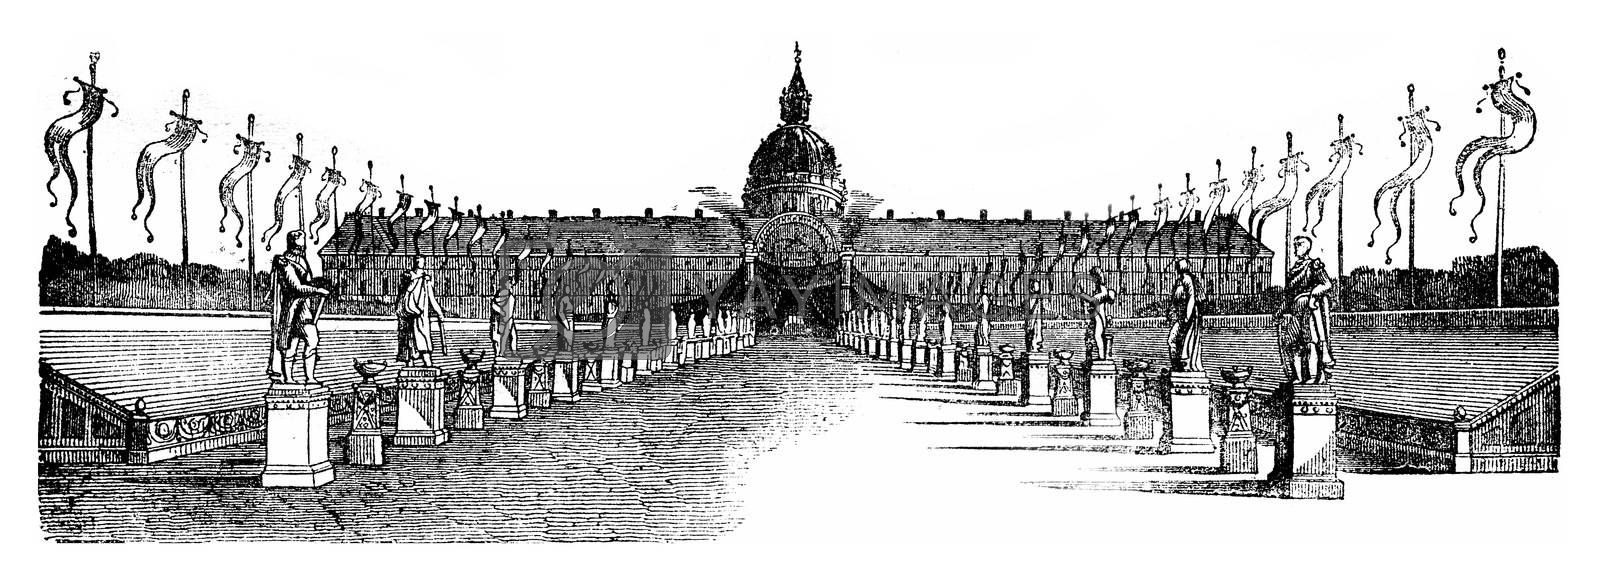 Decorating a part of the Esplanade des Invalides, vintage engraved illustration. Magasin Pittoresque 1841.